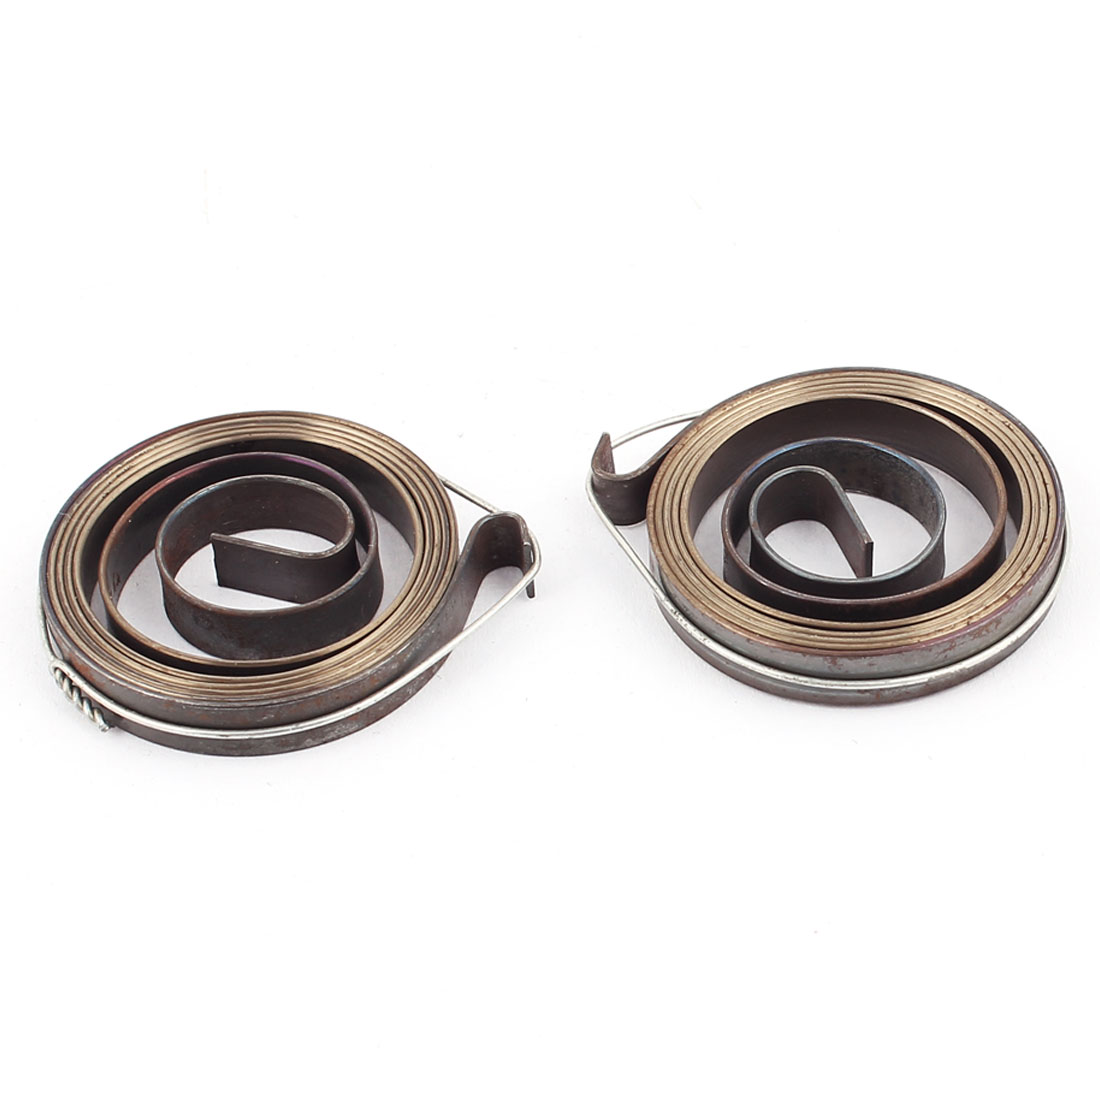 Unique Bargains 36 x 6mm Drill Press Quill Feed Return Coil Spring Assembly Bronze Tone 2 Pcs